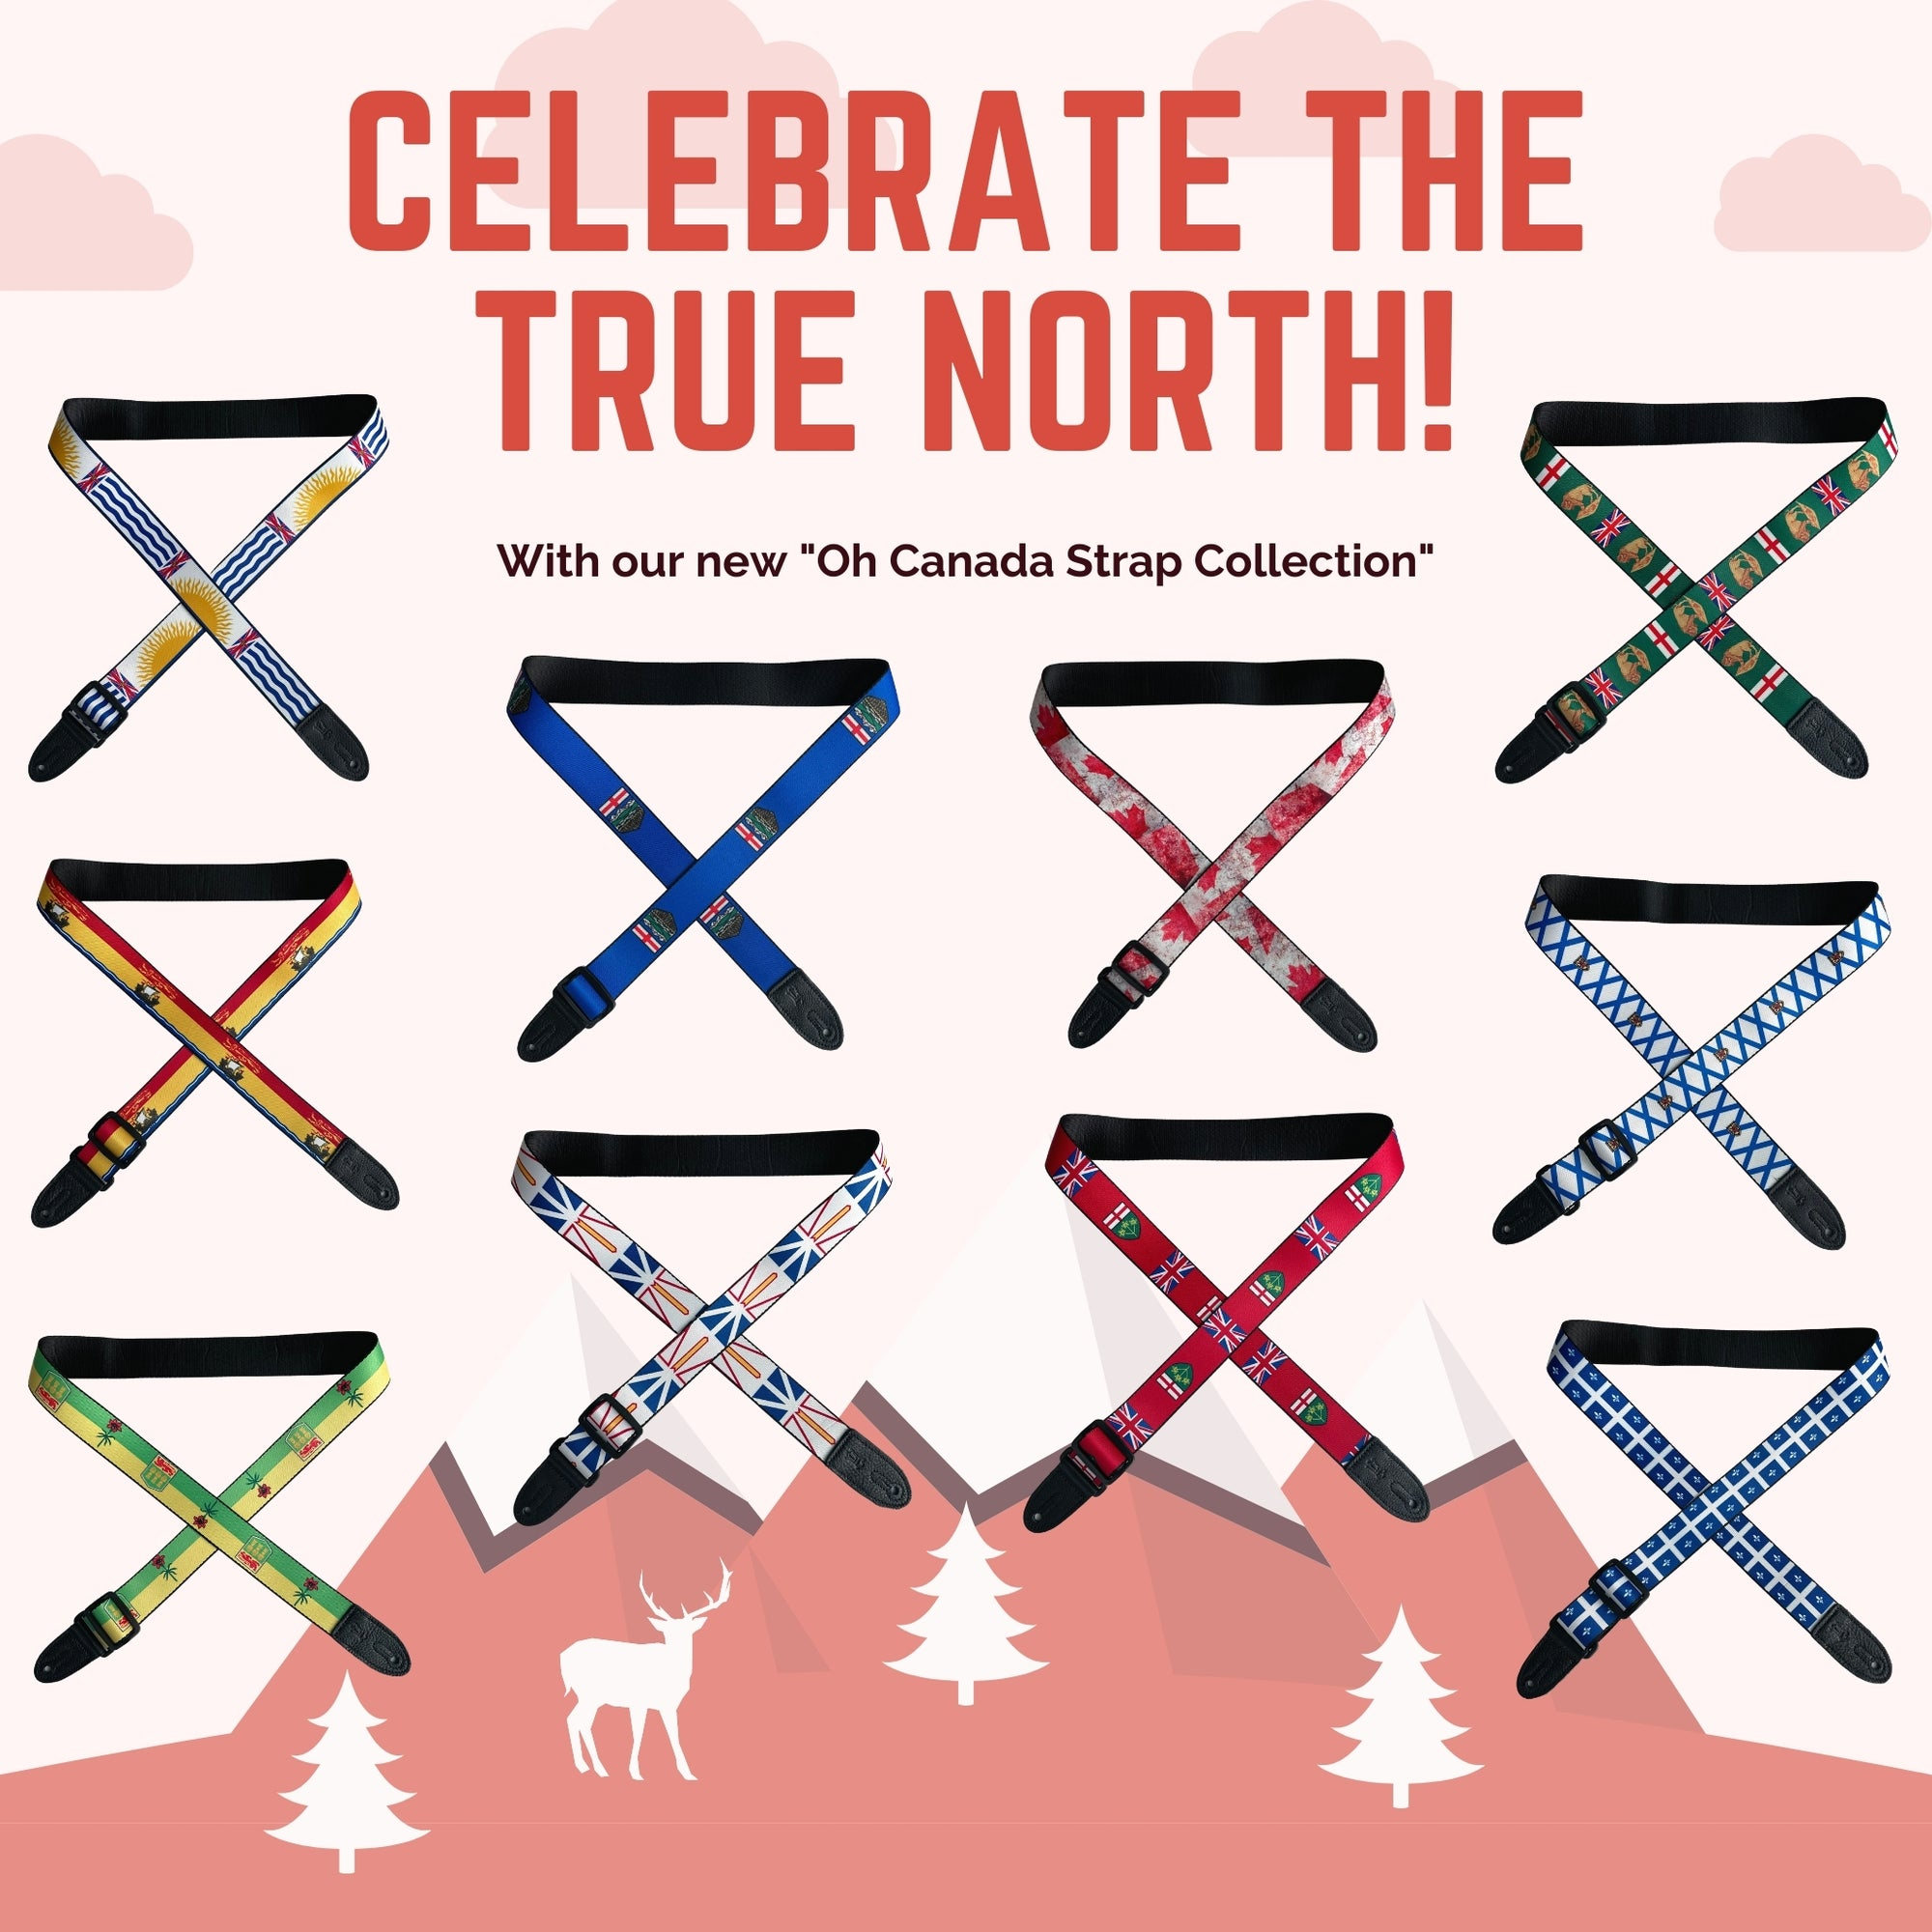 Introducing the Oh Canada strap collection